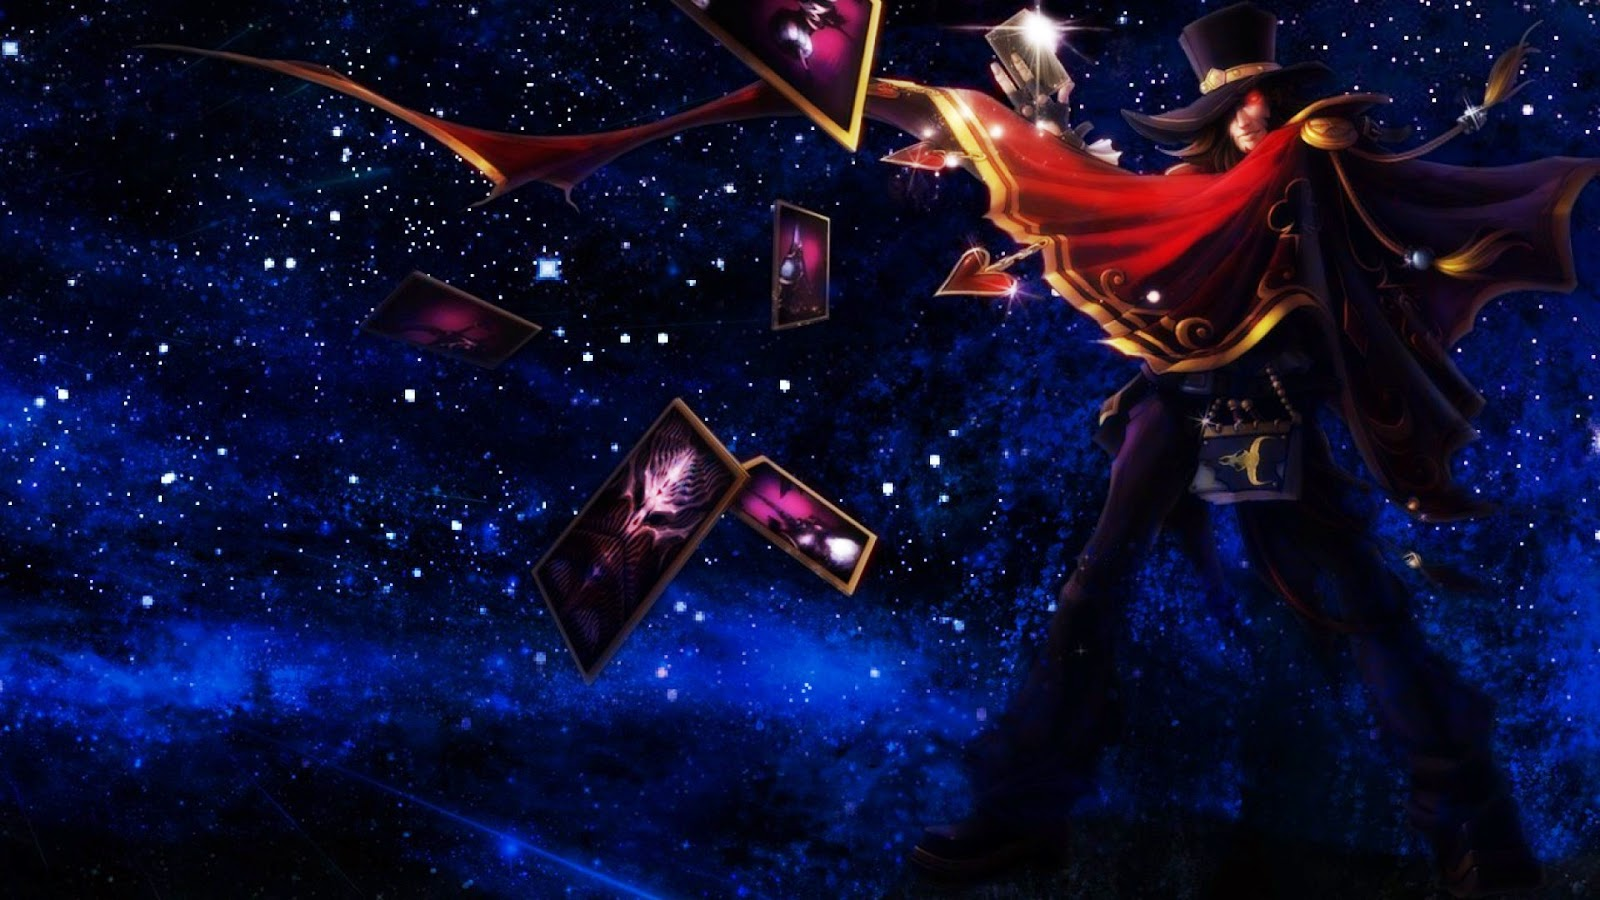 Twisted Fate Desktop Backgrounds Twisted Fate LOL Champion Wallpapers 1600x900